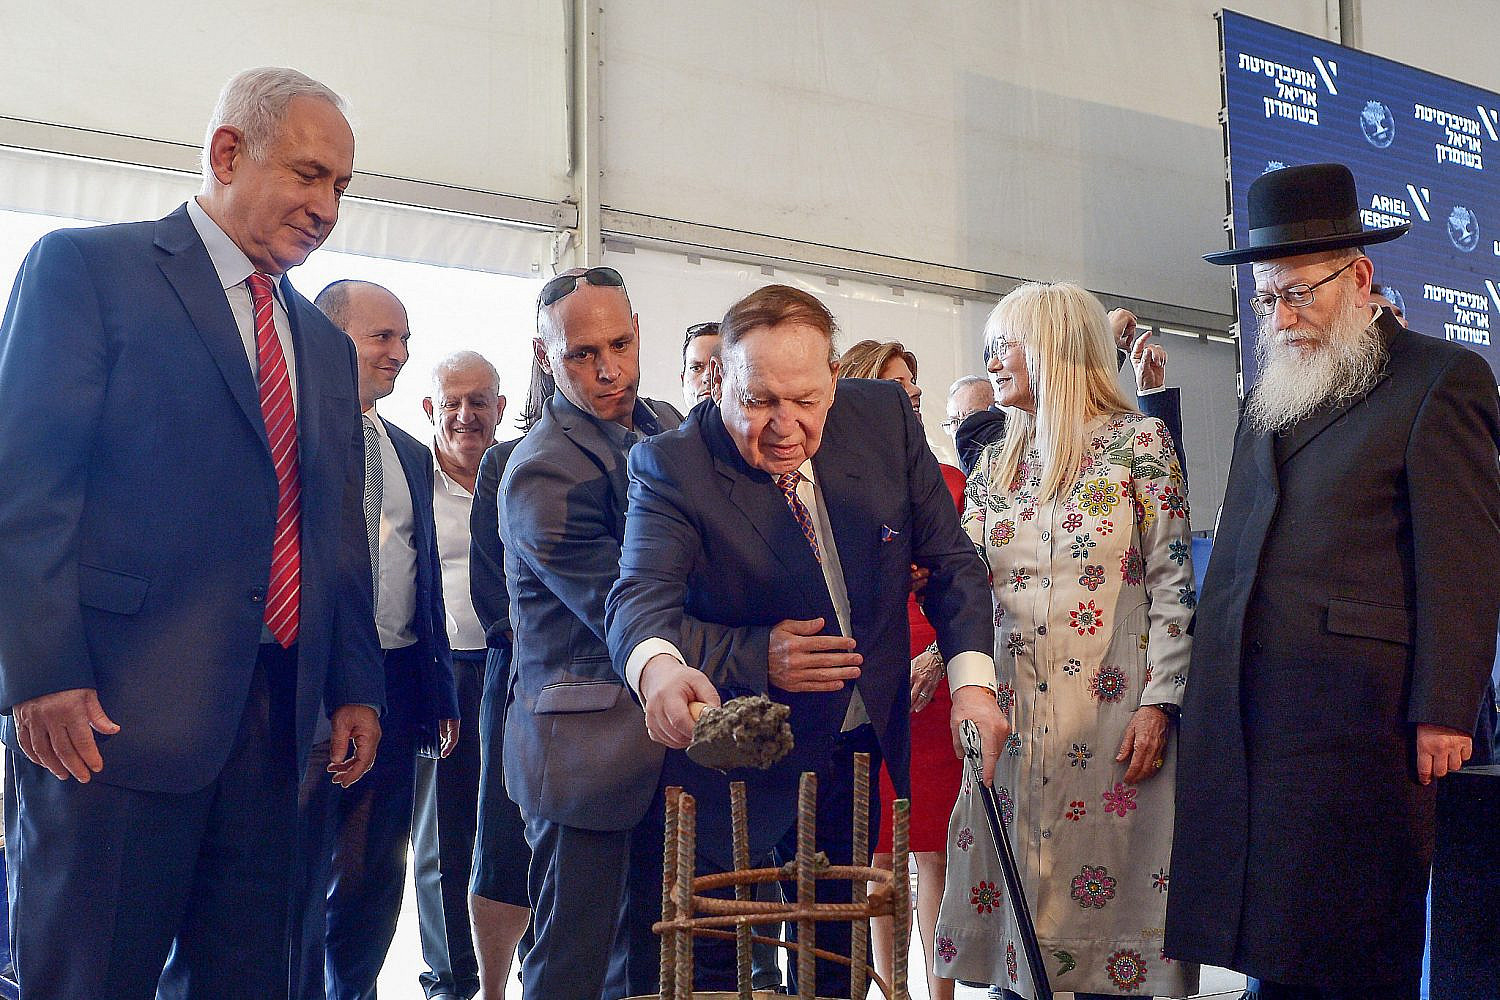 American businessman and investor Sheldon Adelson at the ceremony of a laying of a cornerstone for new Medicine Faculty buildings at Ariel University in the West Bank, June 28, 2017. (Ben Dori/Flash90)